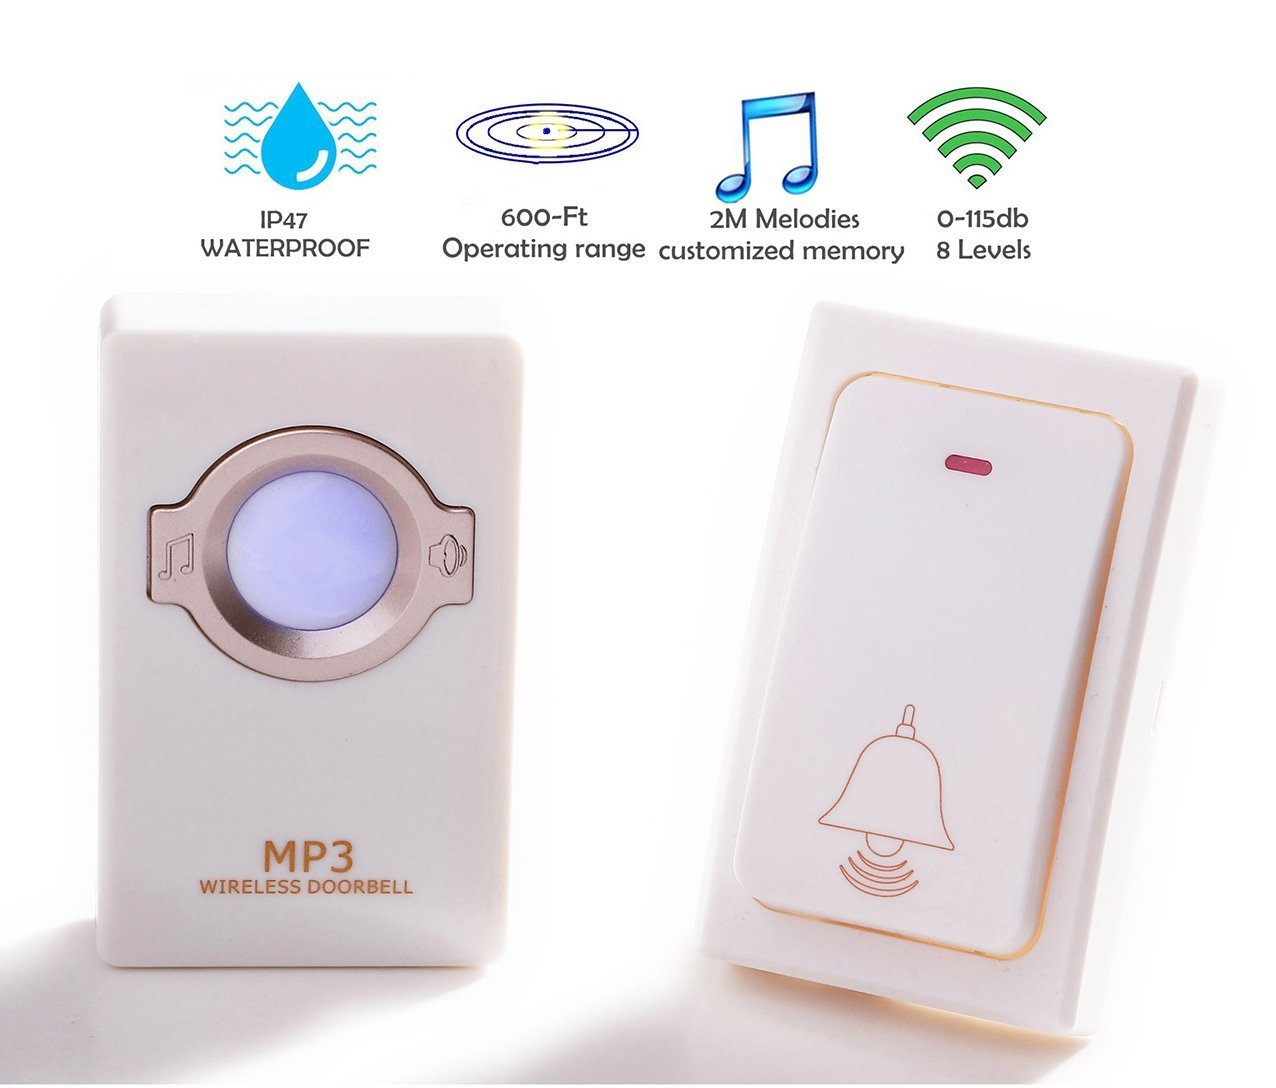 EBDcom Wireless Doorbell Kits No Battery Needed For Both Transmitter And Receiver With Over 16 Musical Tunes Waterproof Push Botton & 8 Volume Levels